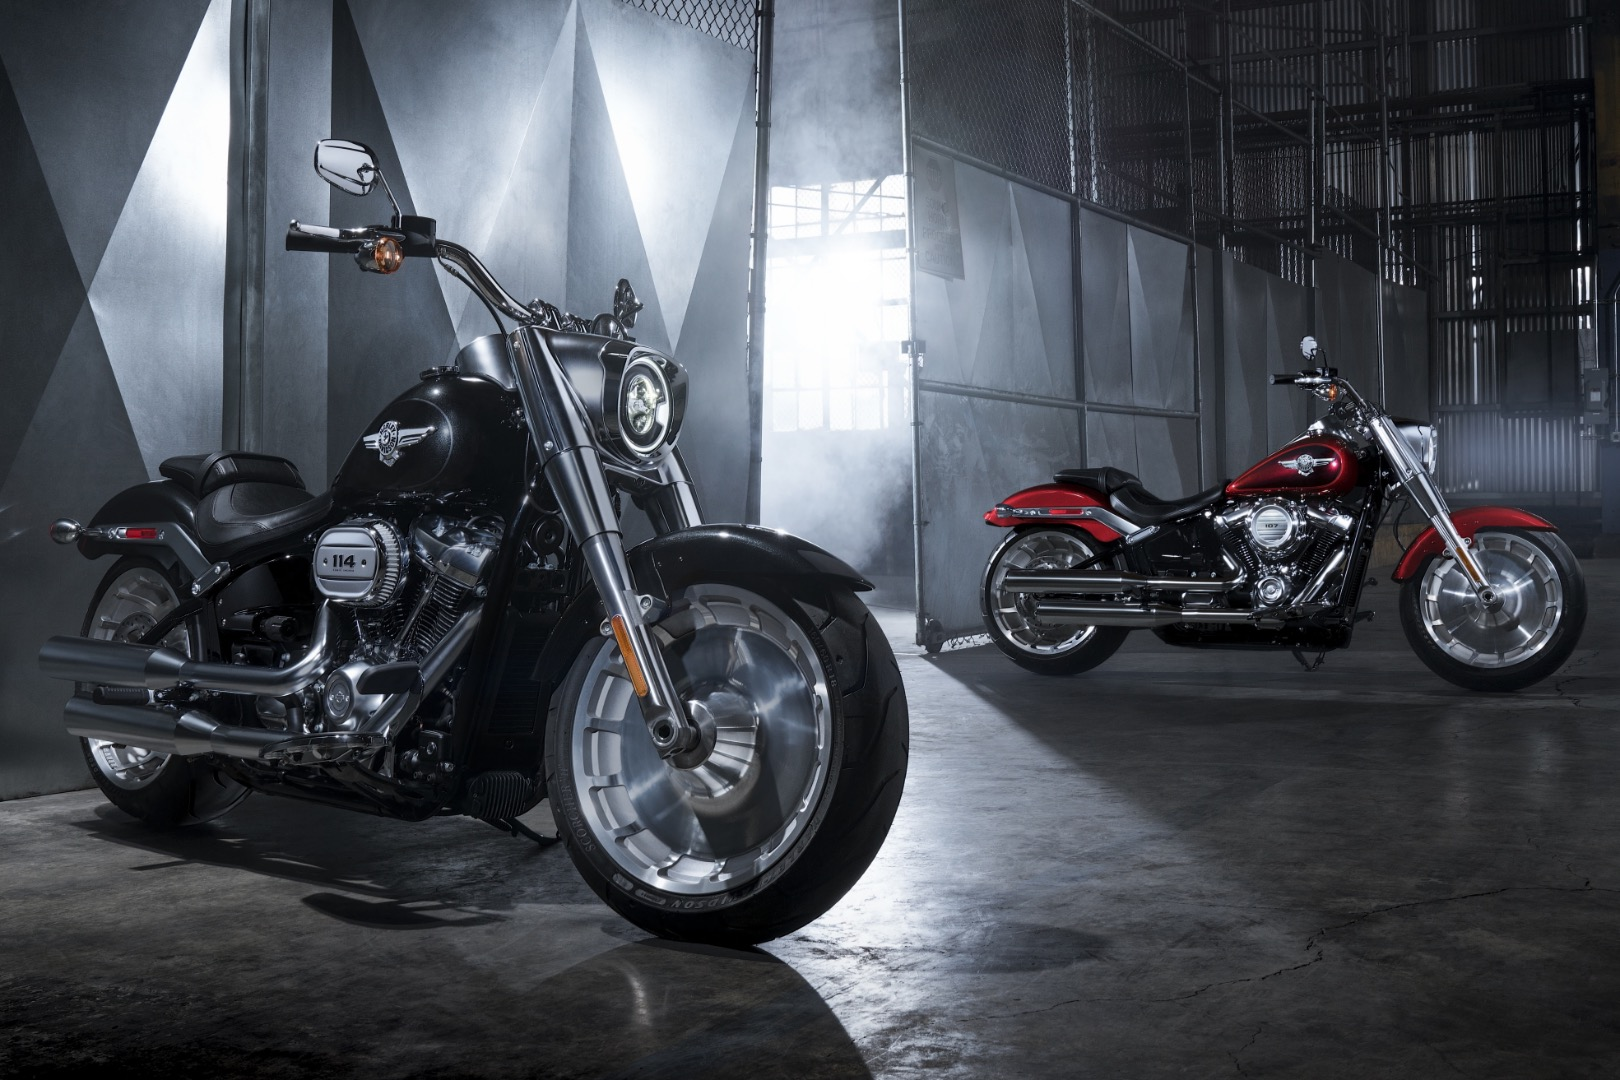 2018 Harley-Davidson Fat Boy and Fat Boy 114 Buyer's Guide | Specs & Prices